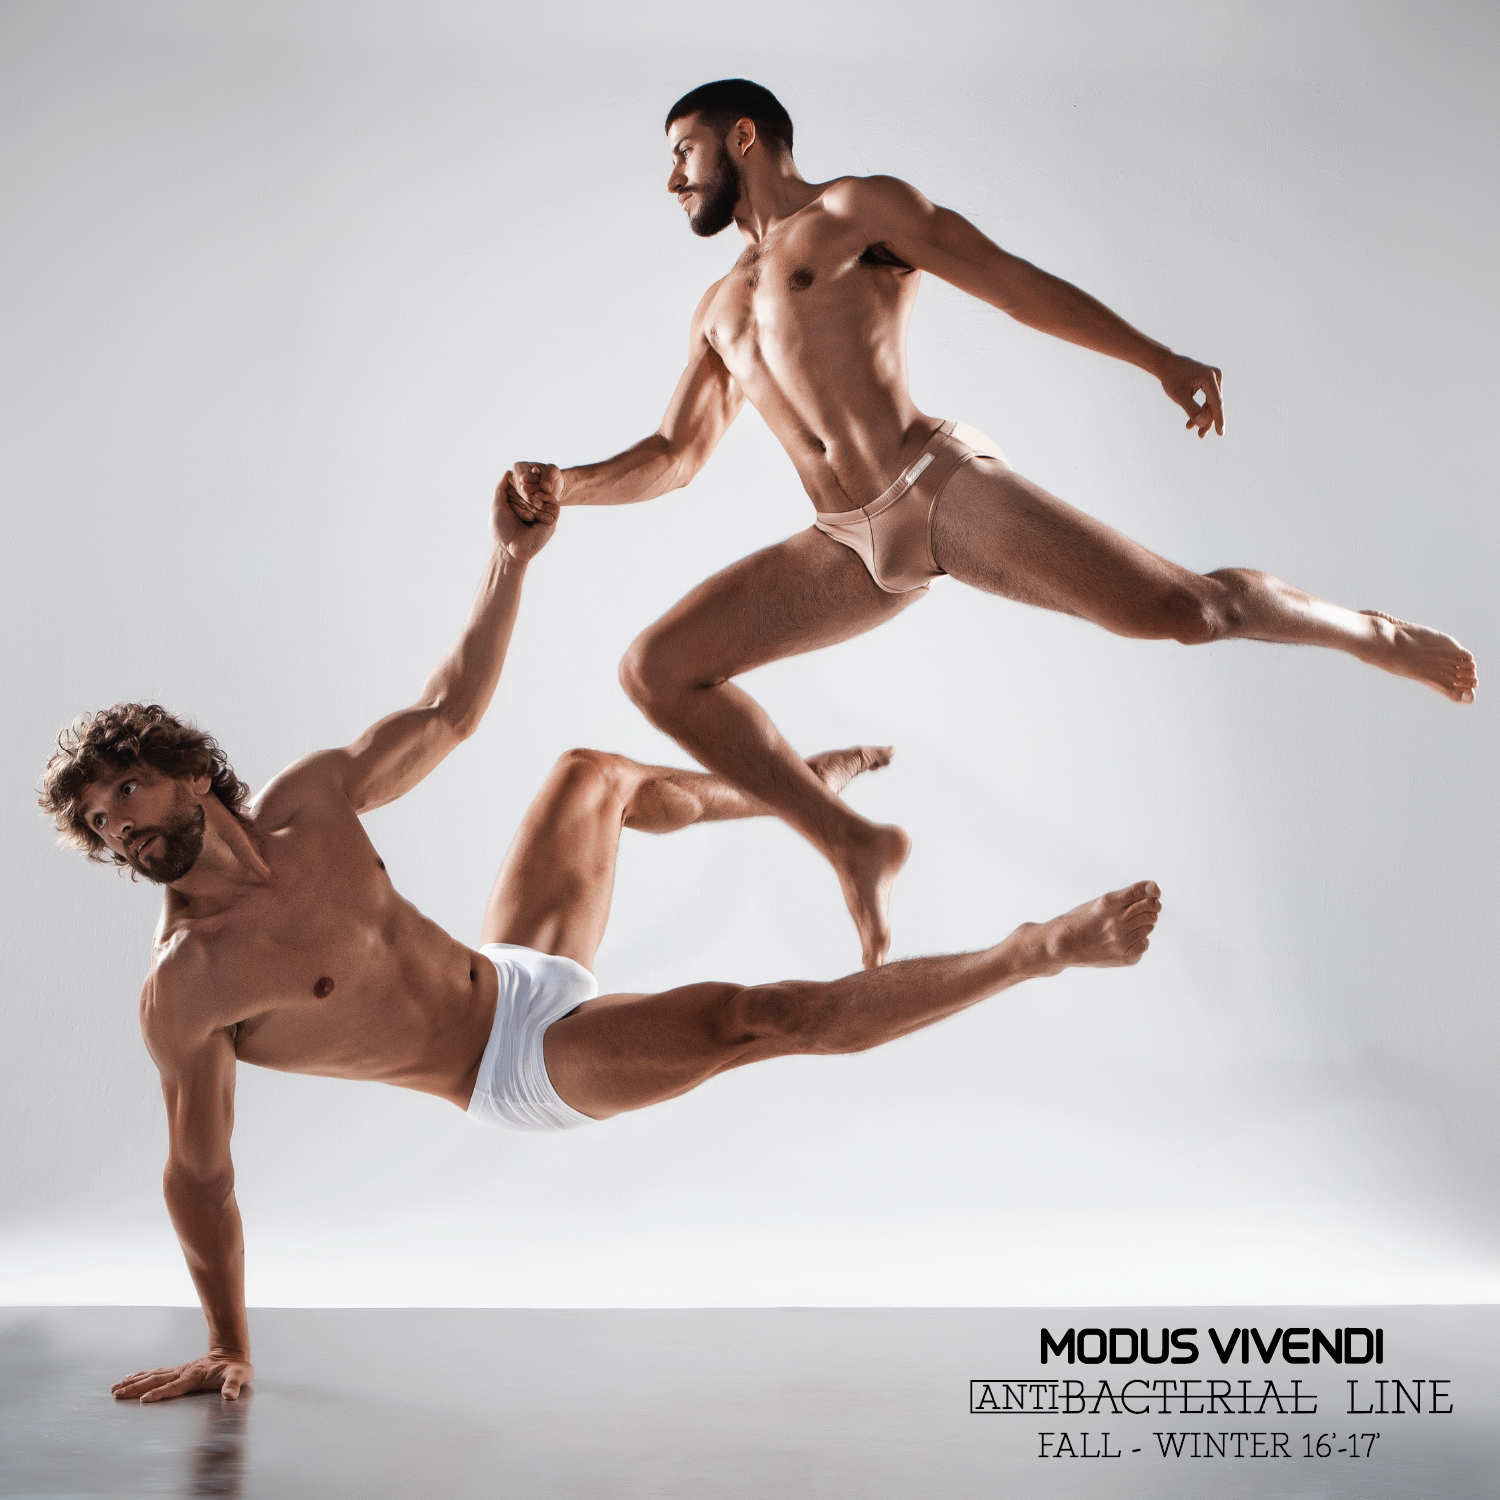 Modus Vivendi - collection 'Antibactrerial'